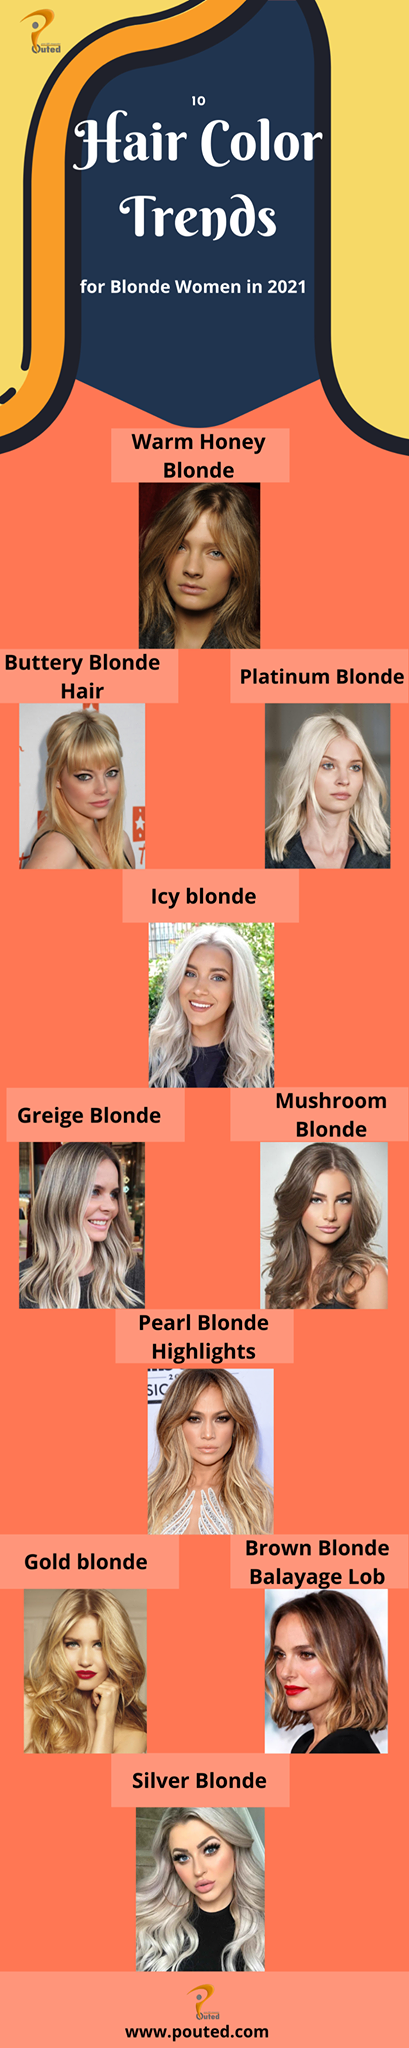 hair-color-trends-for-blonde-women Top 10 Hair Color Trends for Blonde Women in 2021